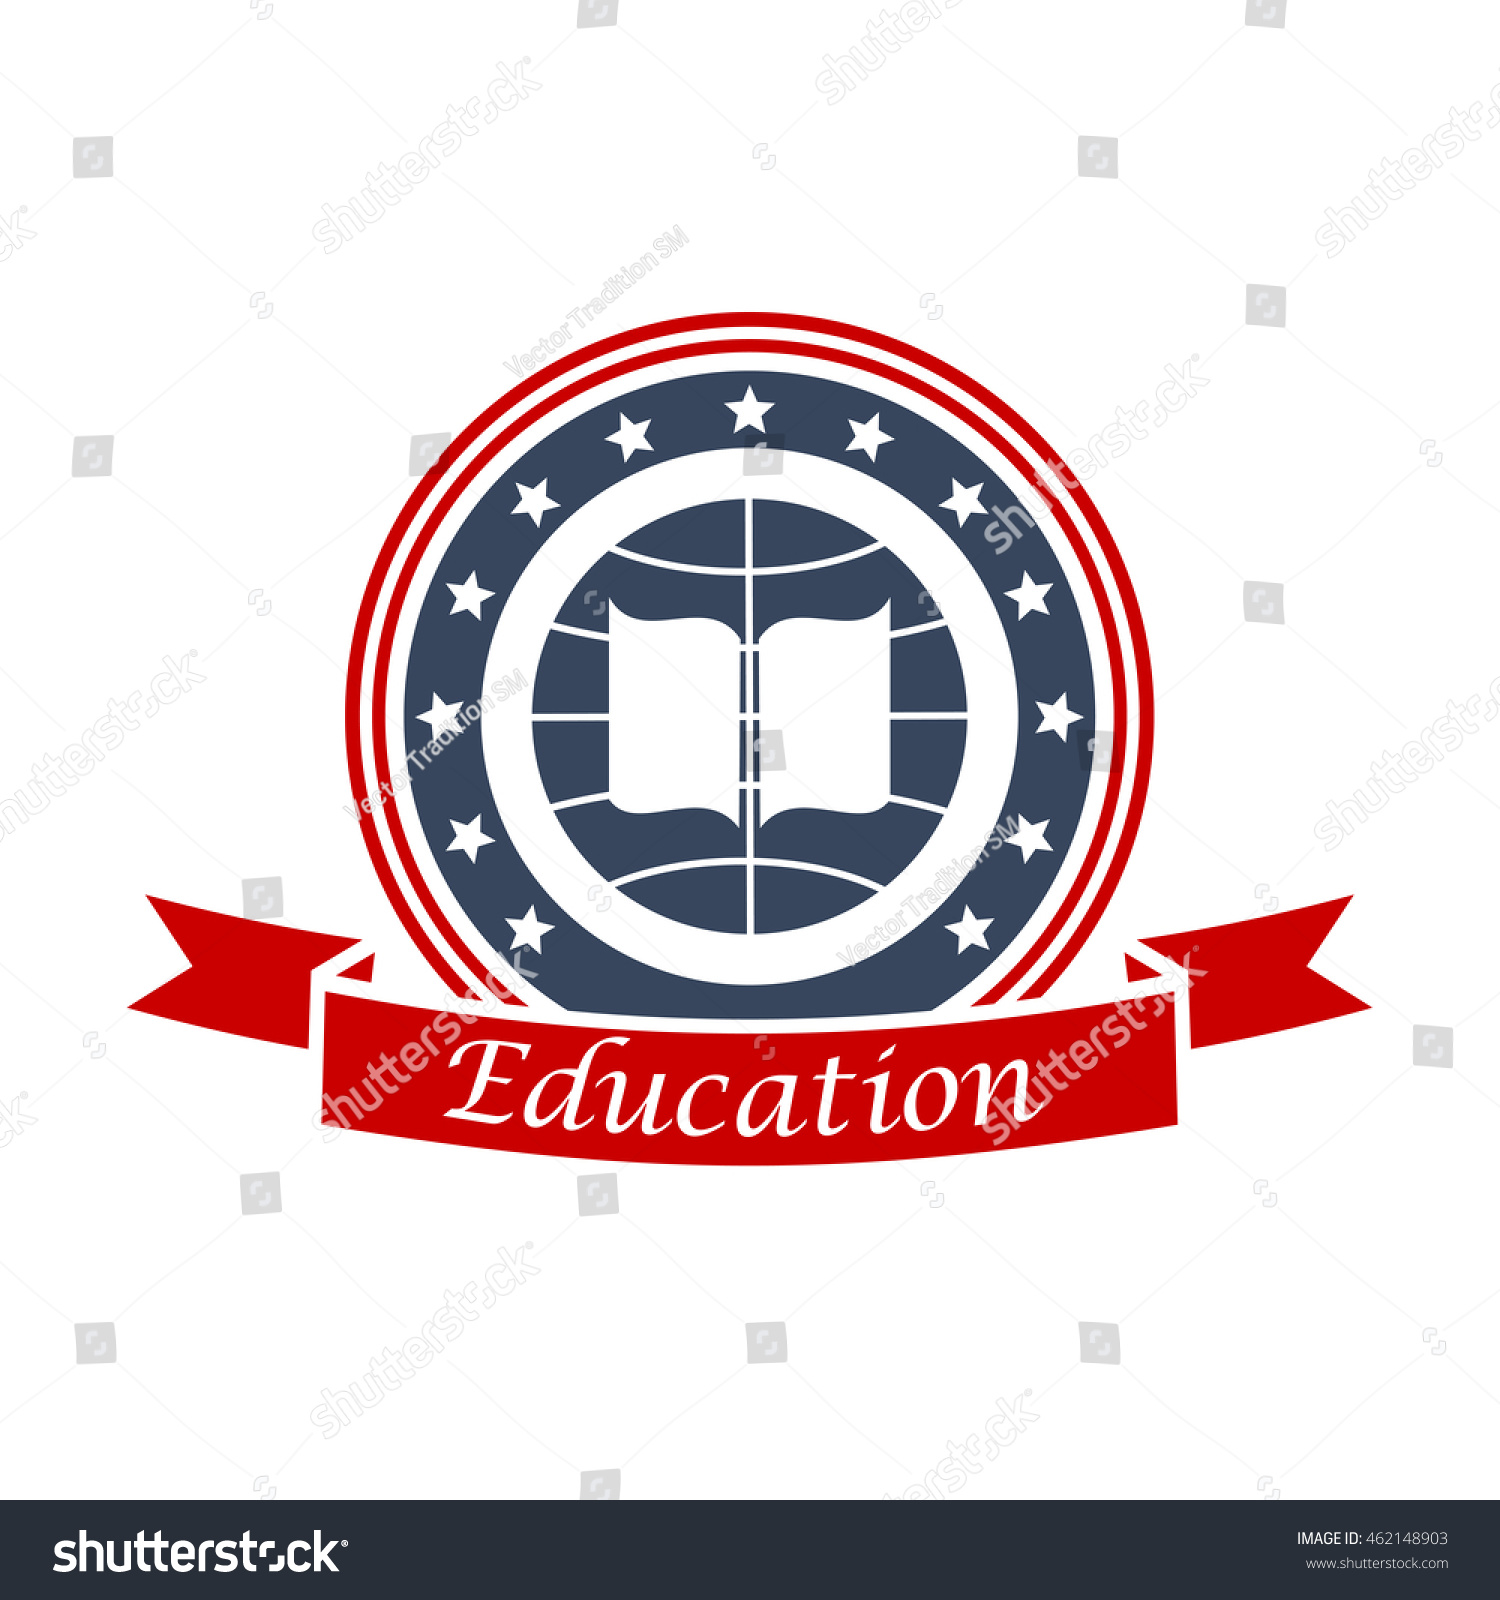 Education Emblem Design Book Globe Red Stock Vector (Royalty